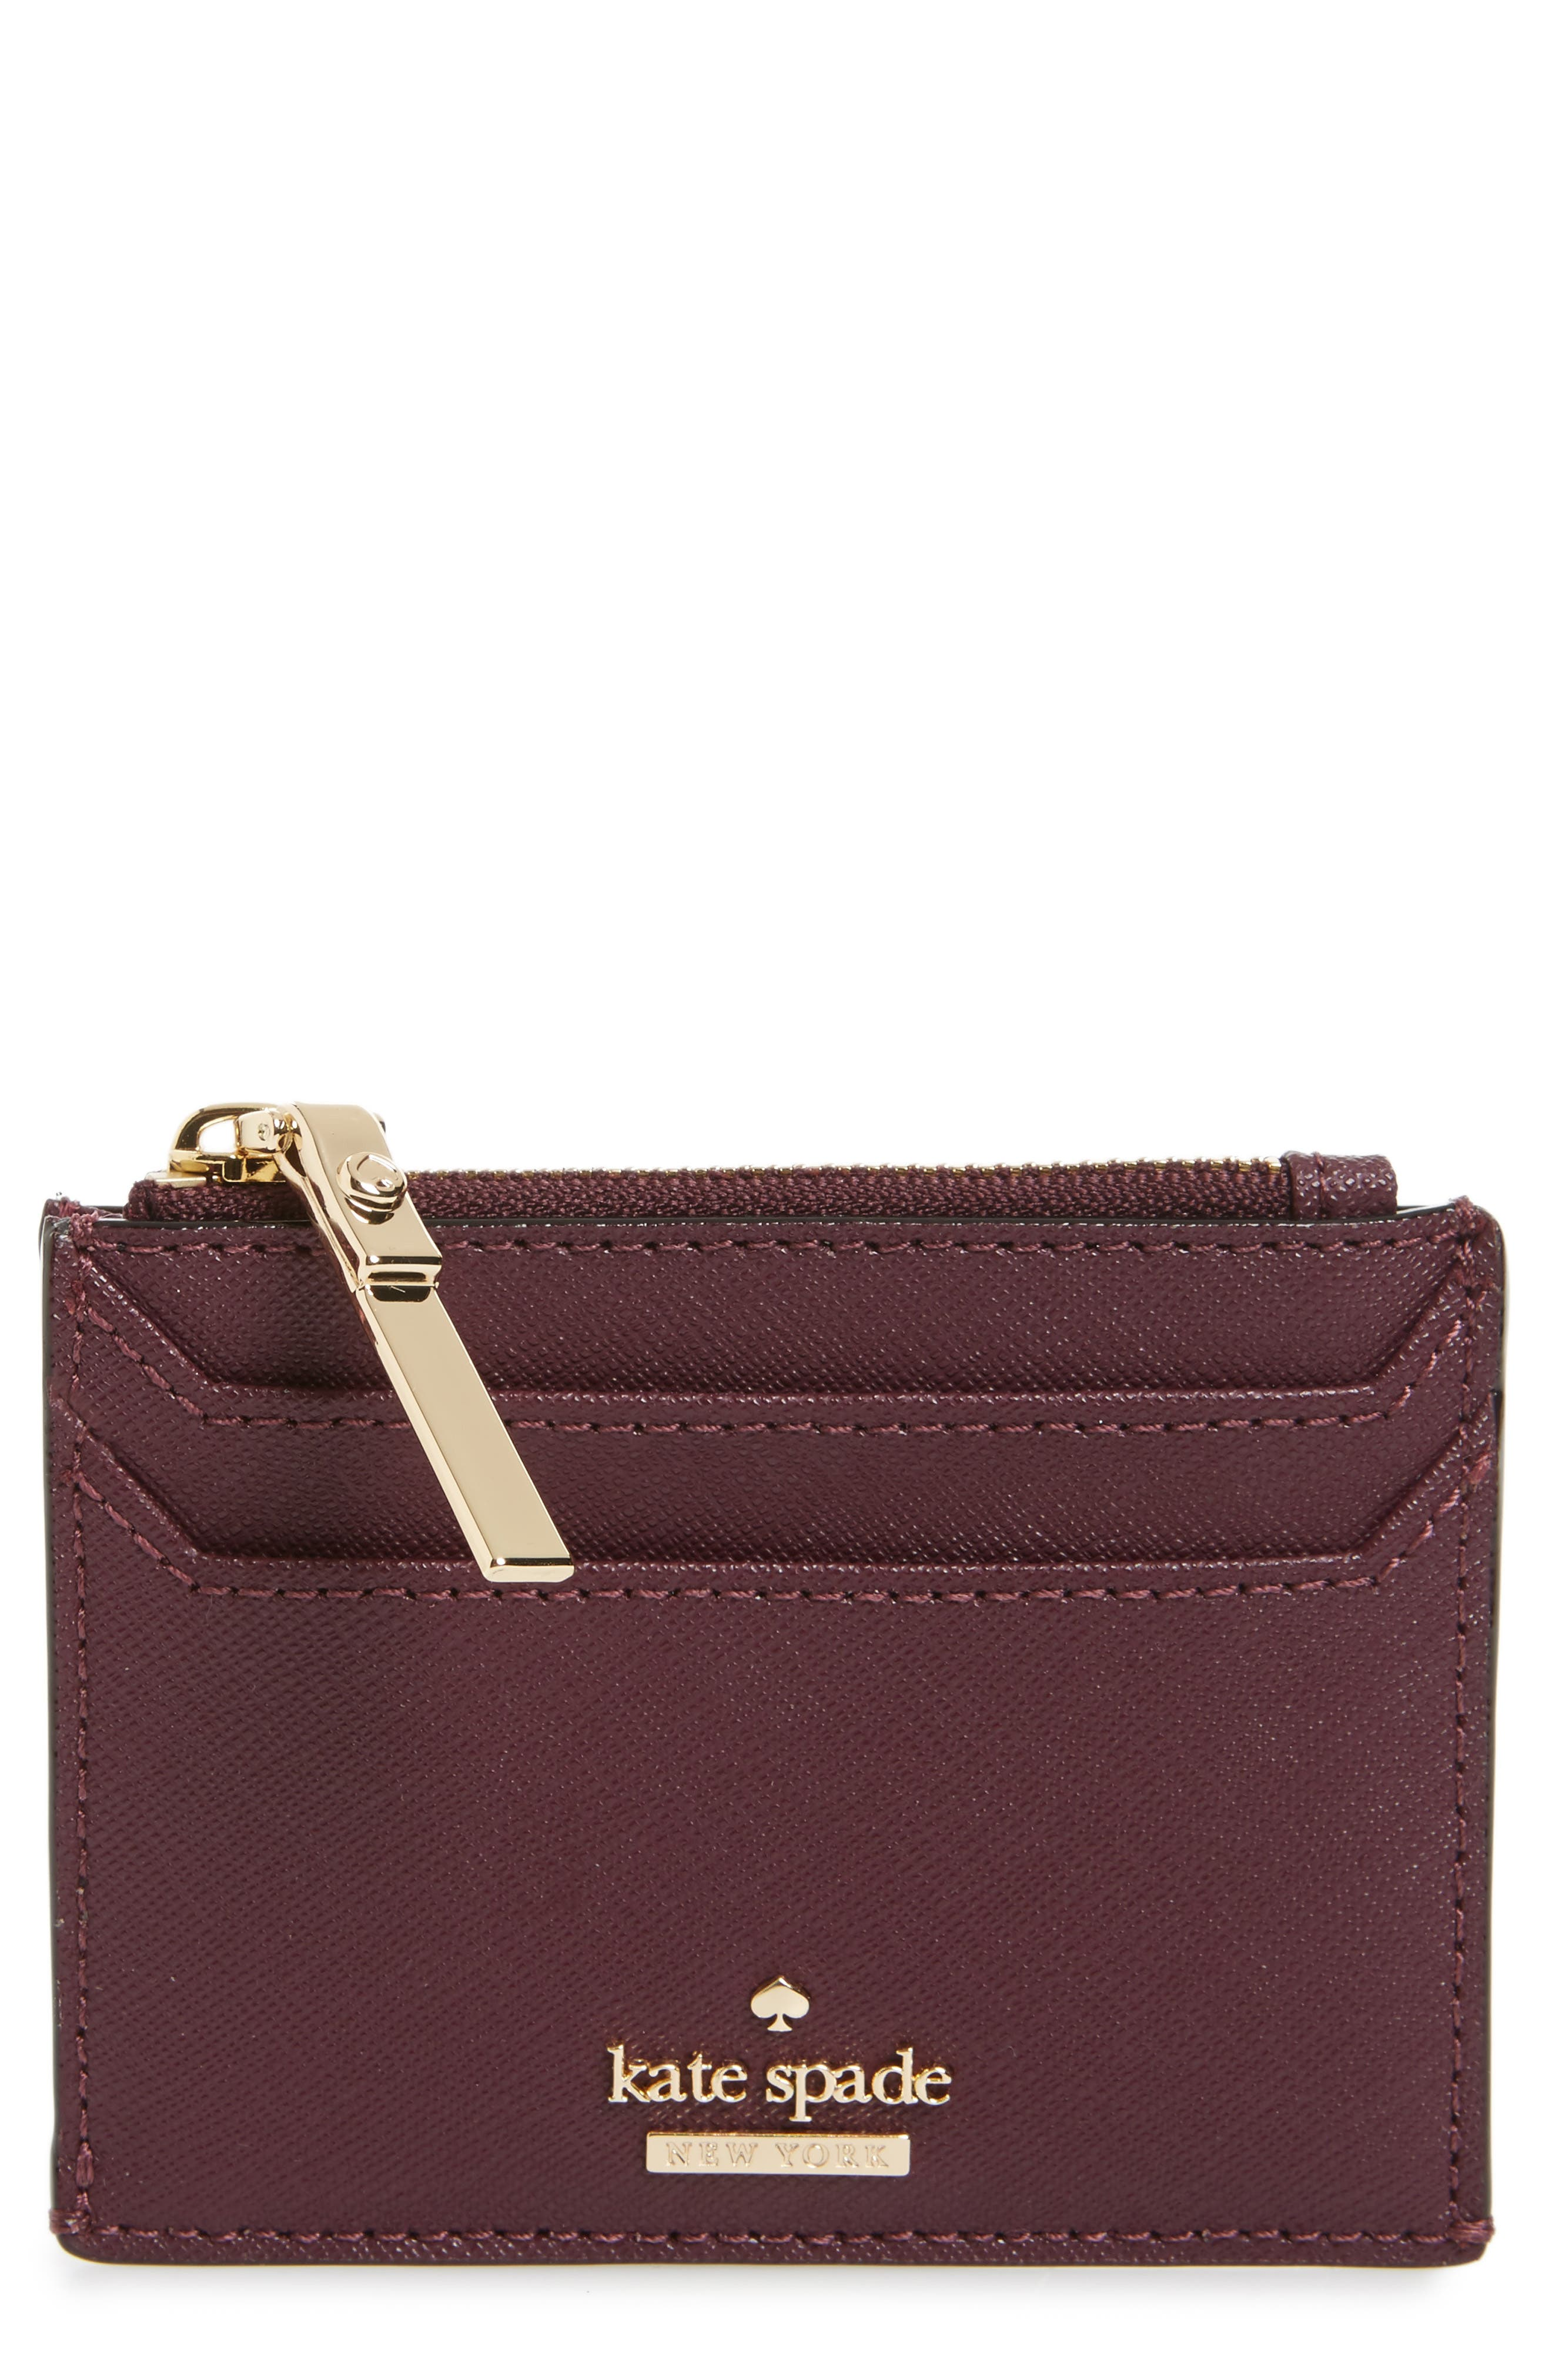 kate spade new york cameron street - lalena leather card case